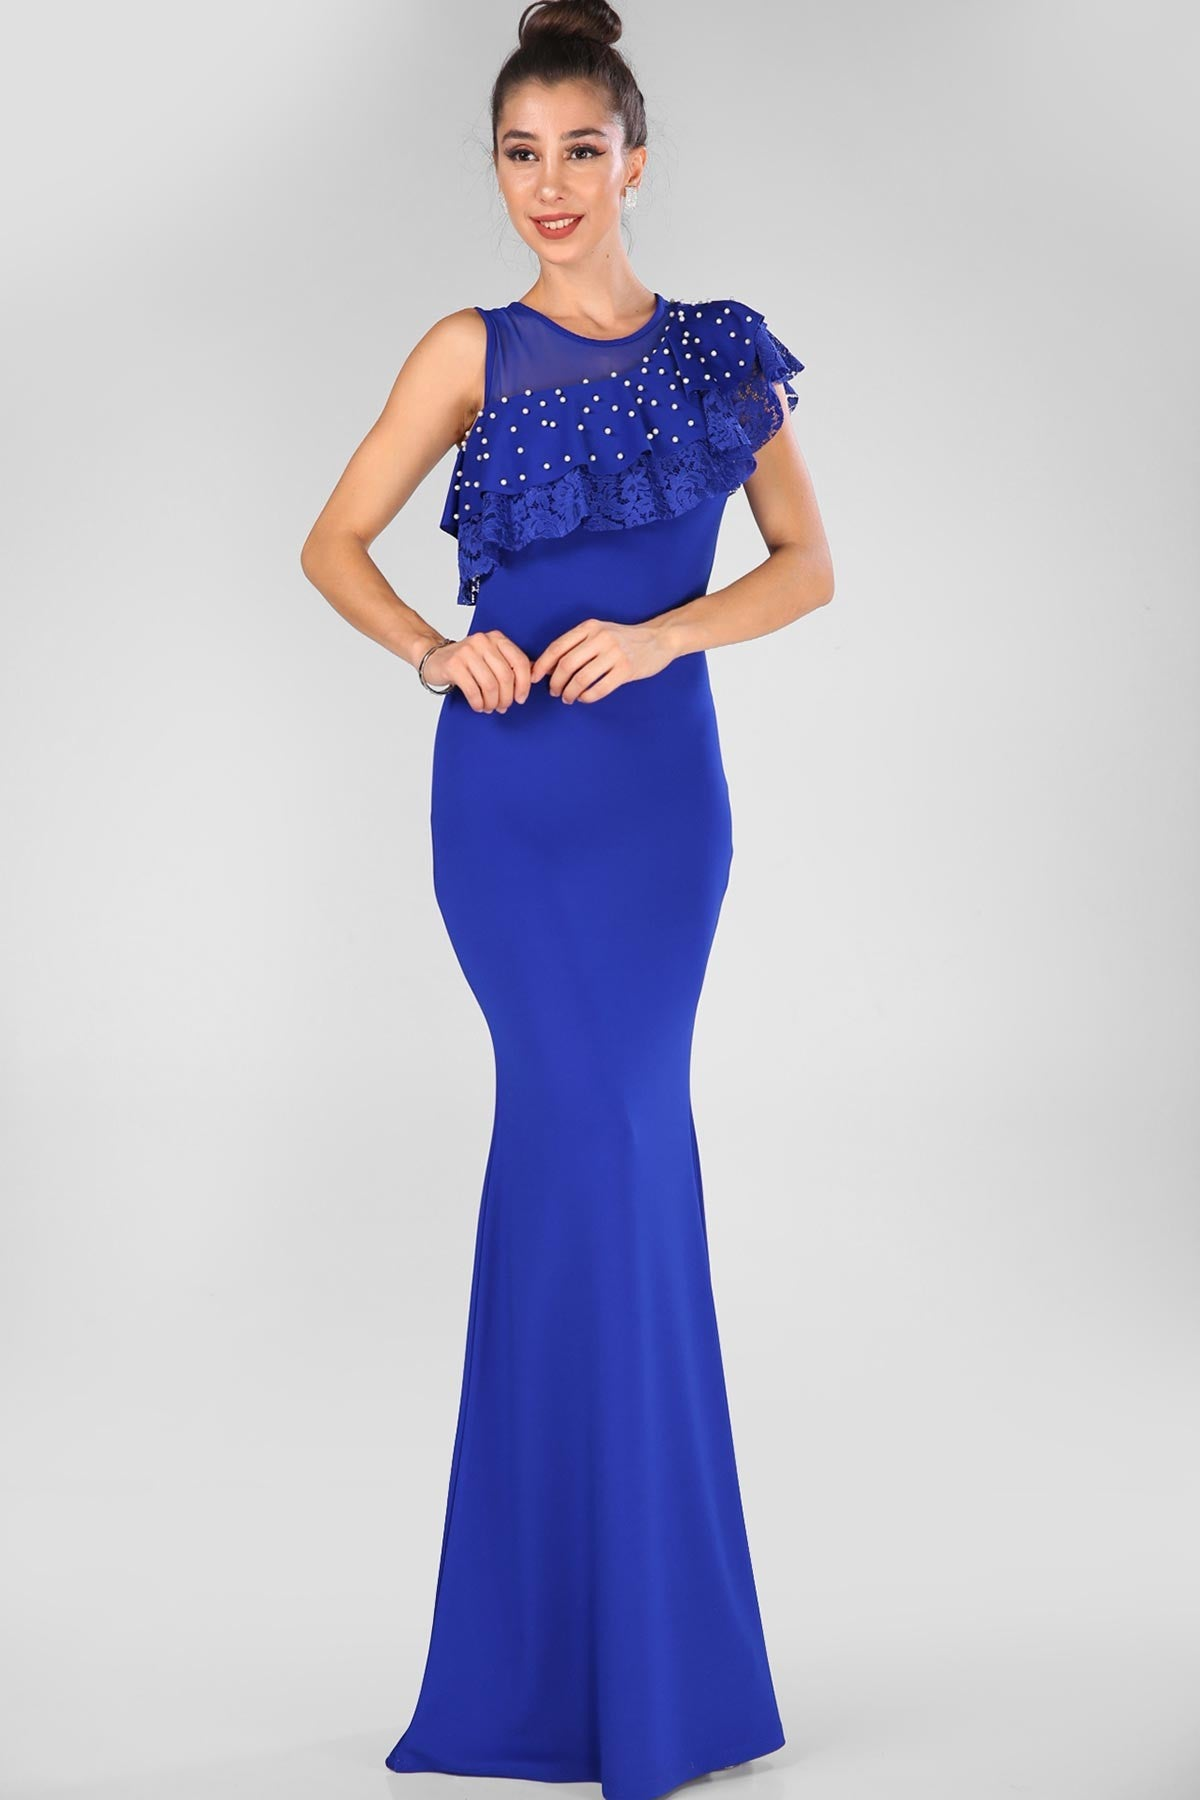 Pearled Saxe Evening Dress